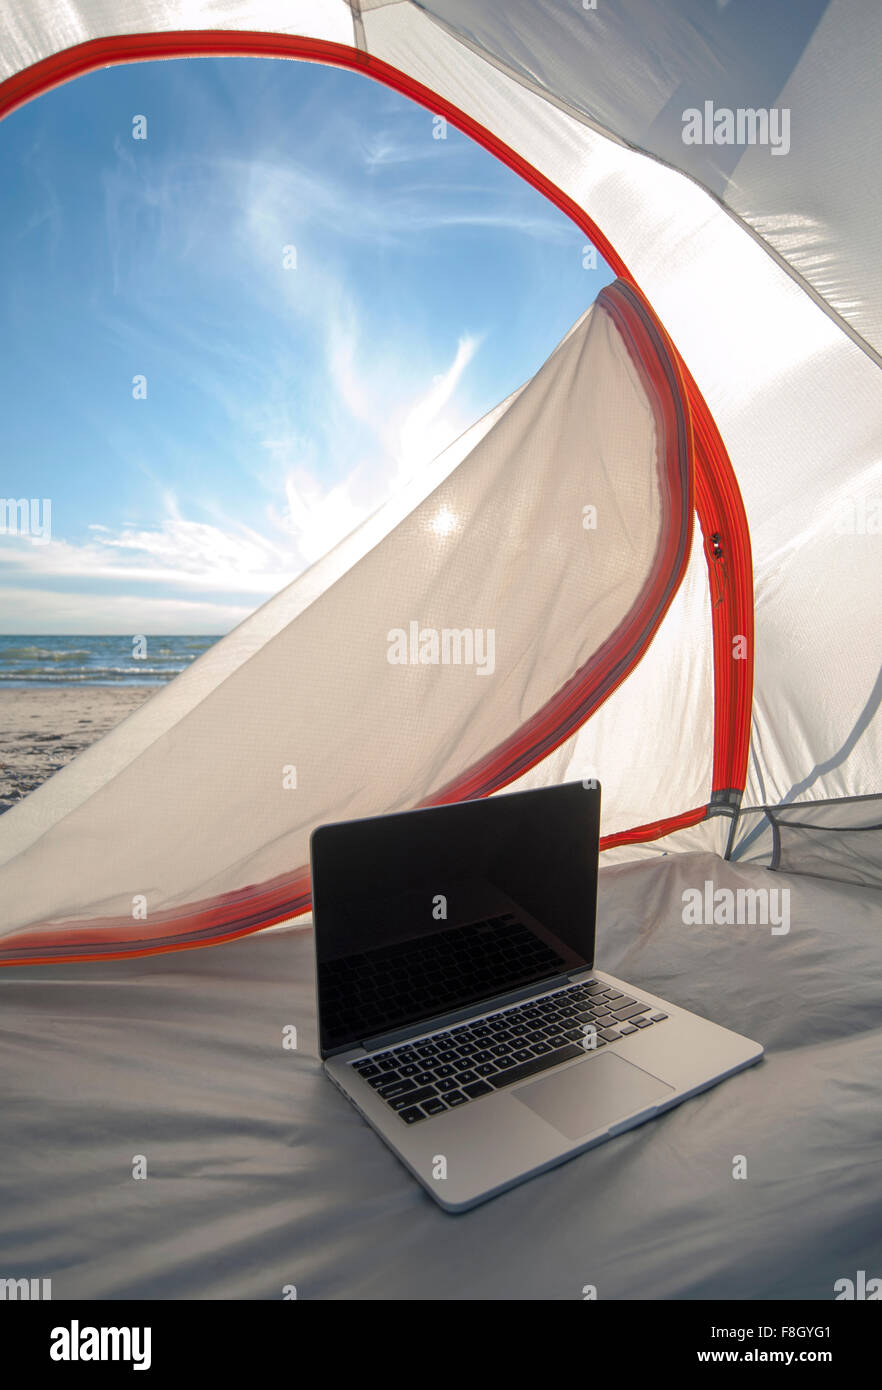 Laptop in camping tent on beach - Stock Image